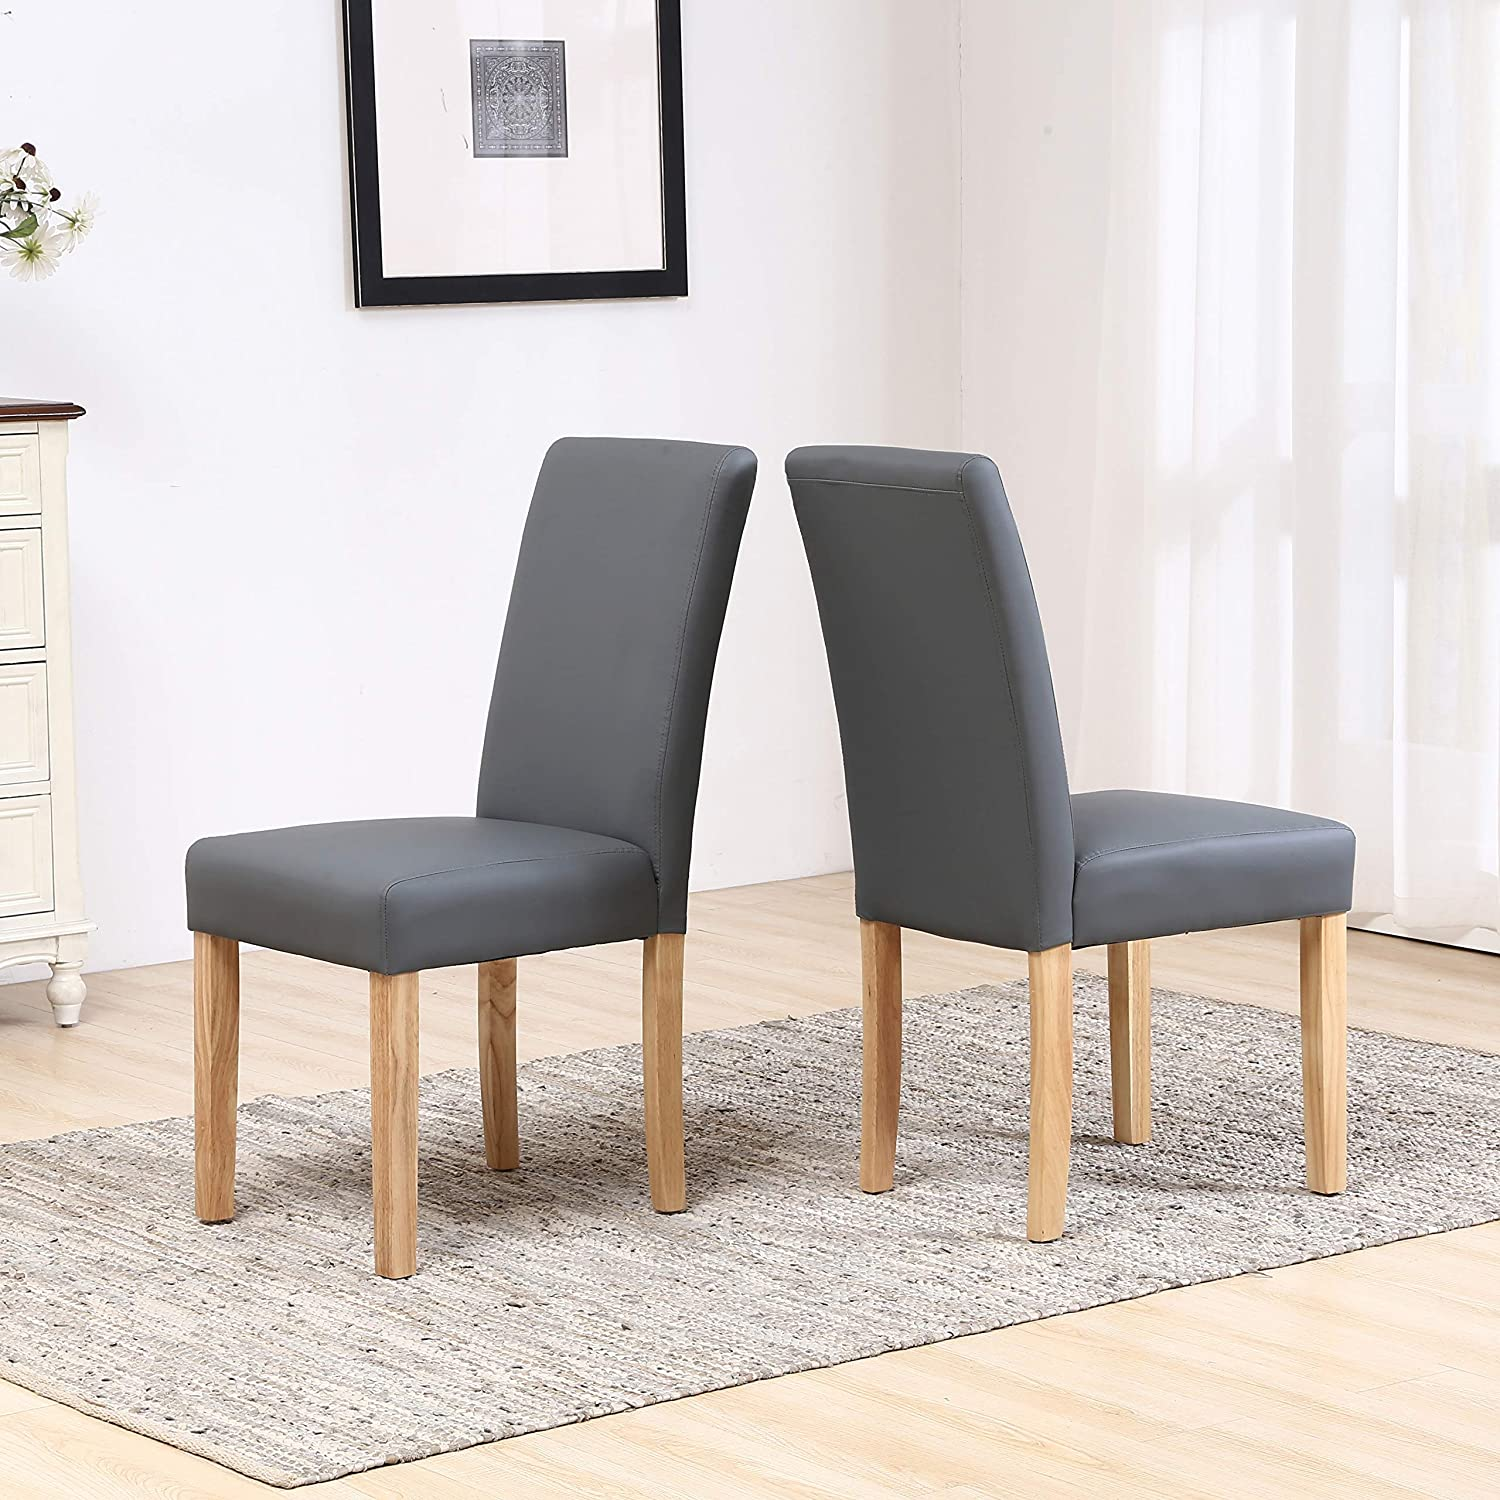 Neo® 2X Pair of Faux PU High Back Seat Leather Dining Room Restaurant Chairs Set Wooden Oak Legs (Cream) Dark Grey